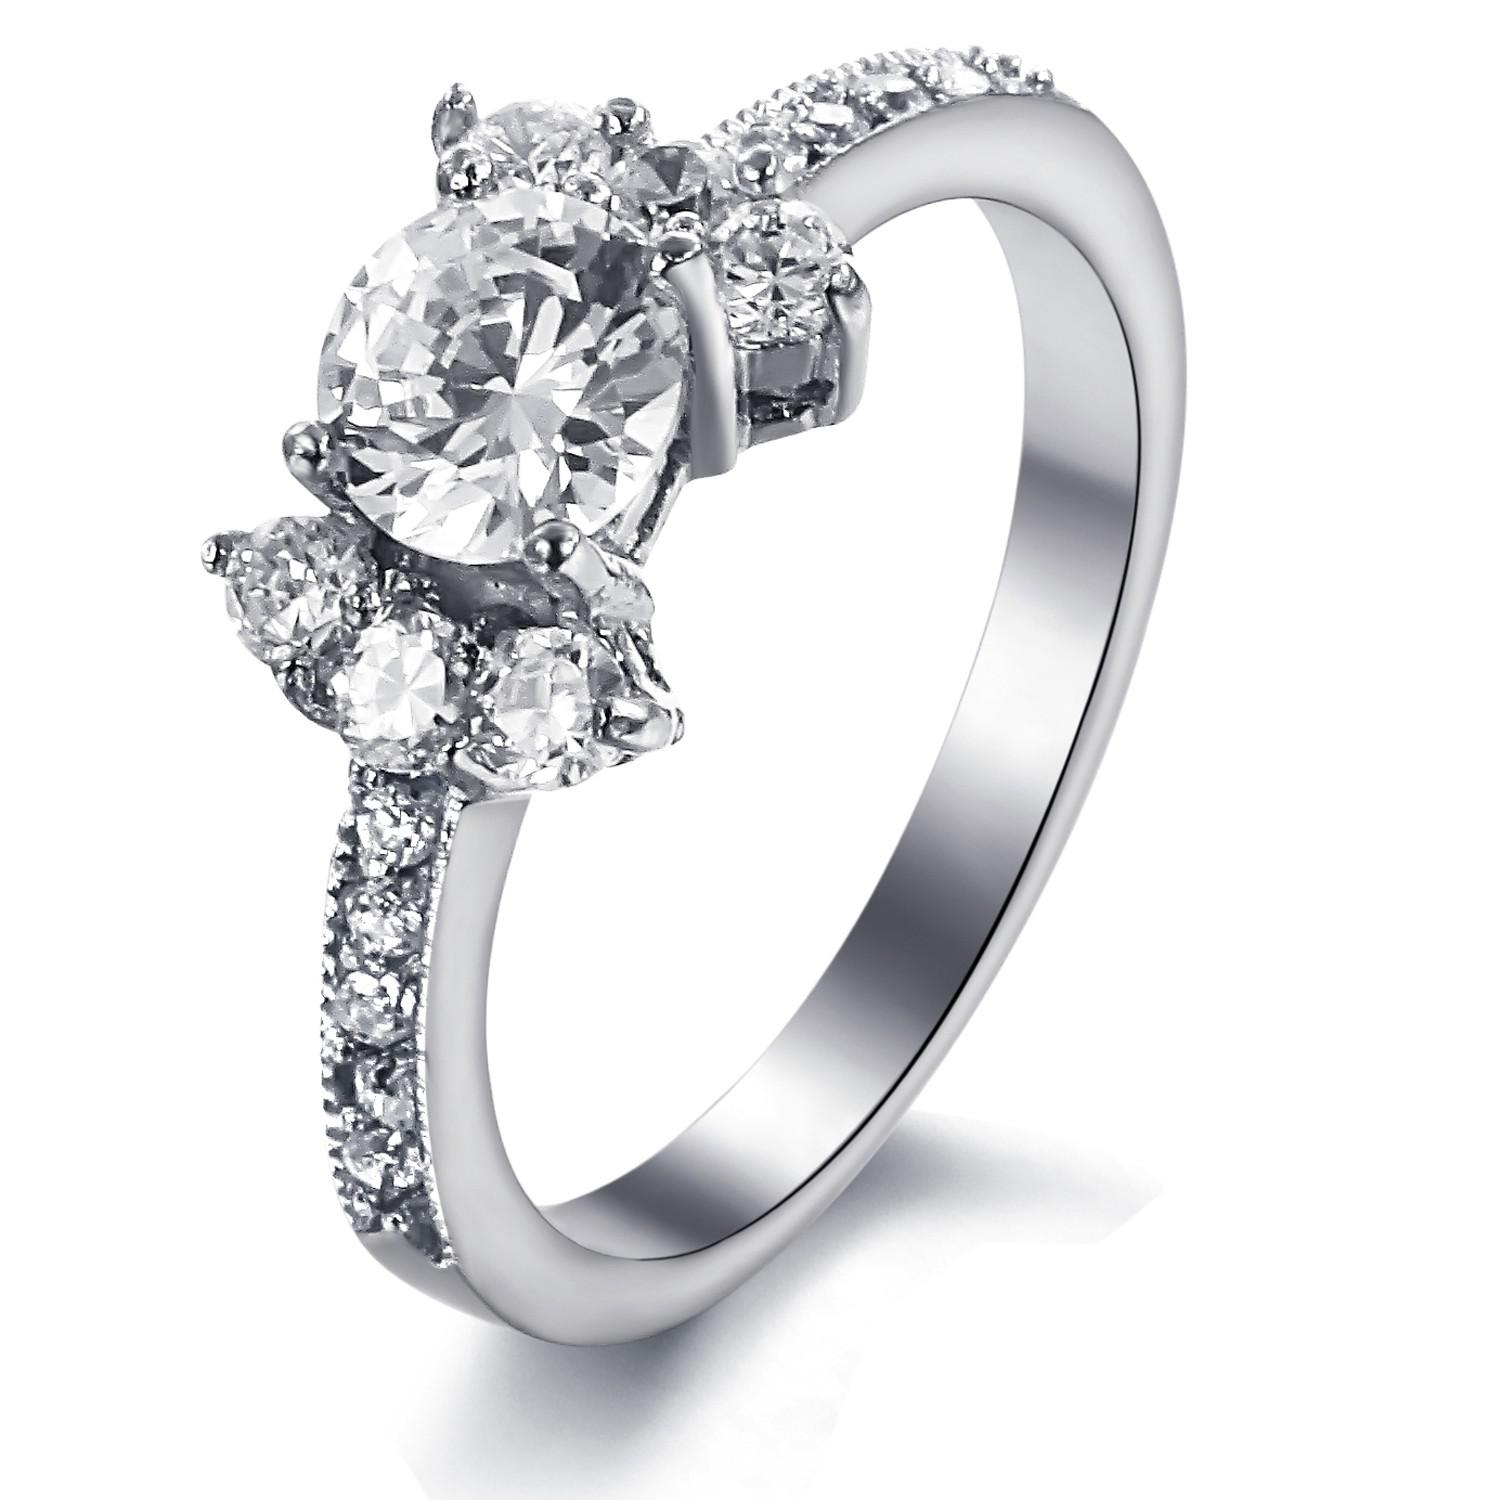 Bowknot Ring Exquisite Diamond Bowknot Ring